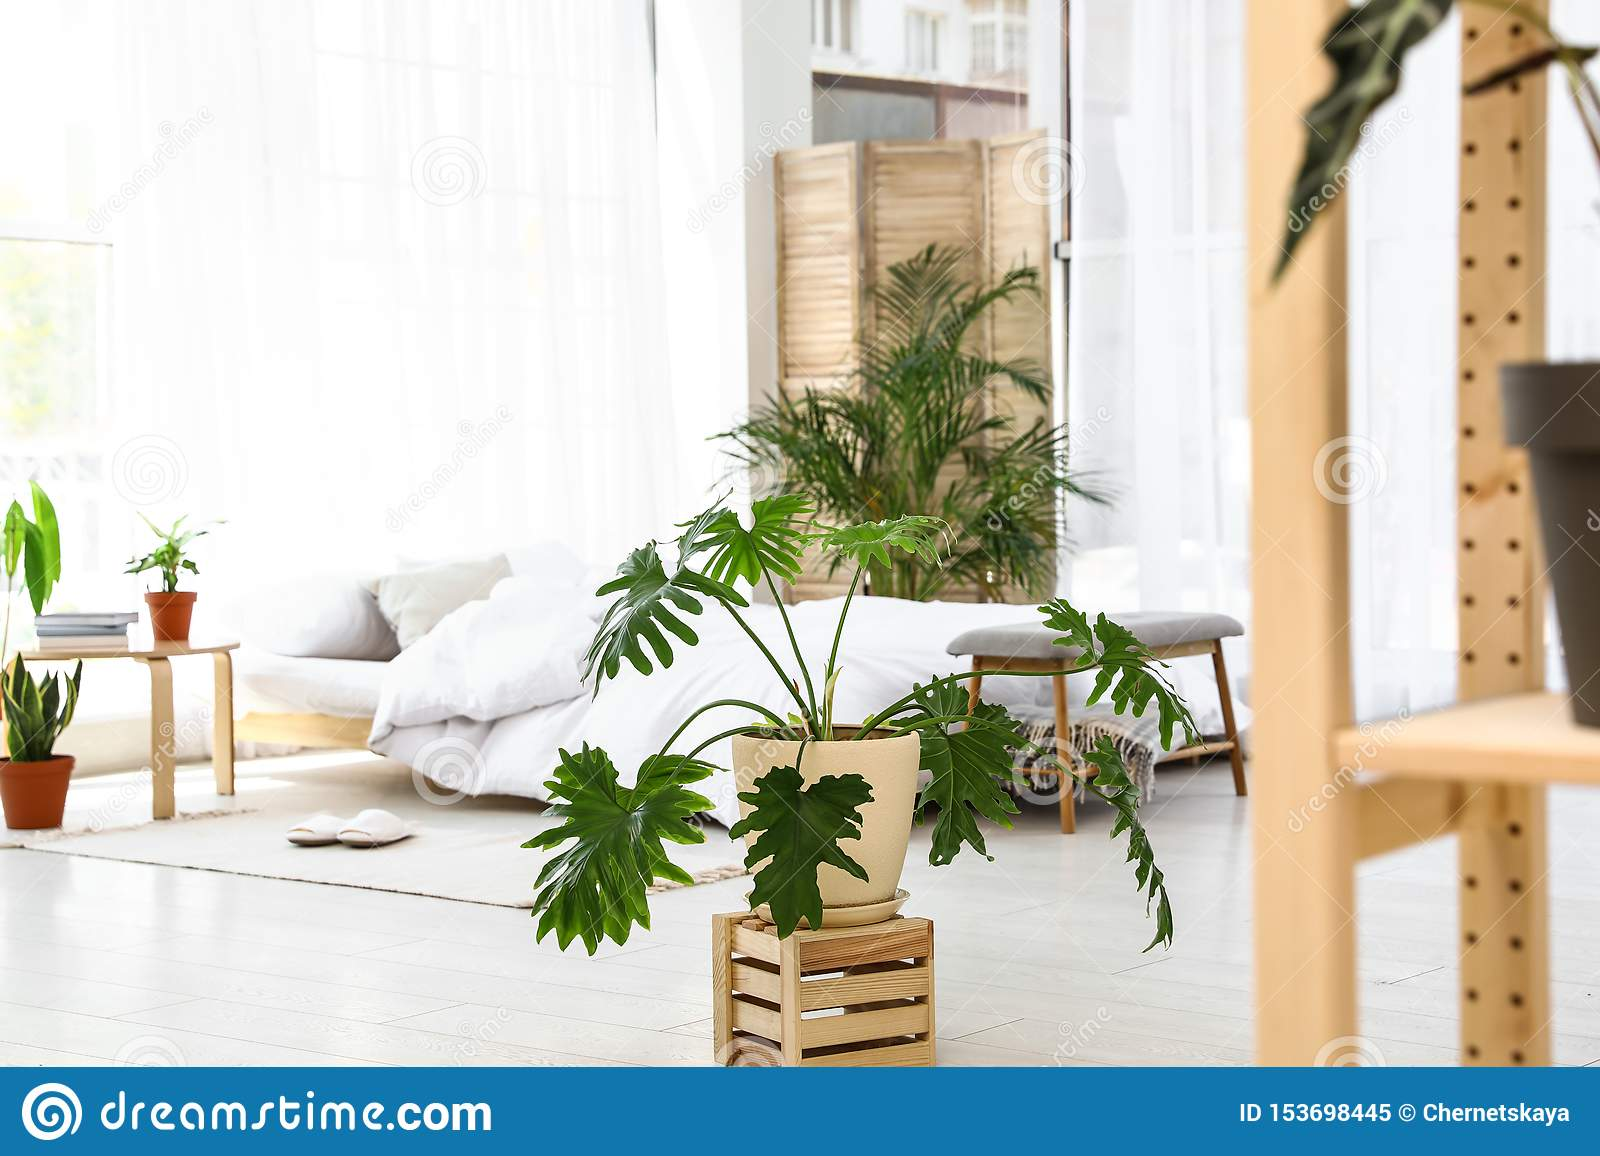 943 Indoor Plants Bedroom Photos Free Royalty Free Stock Photos From Dreamstime